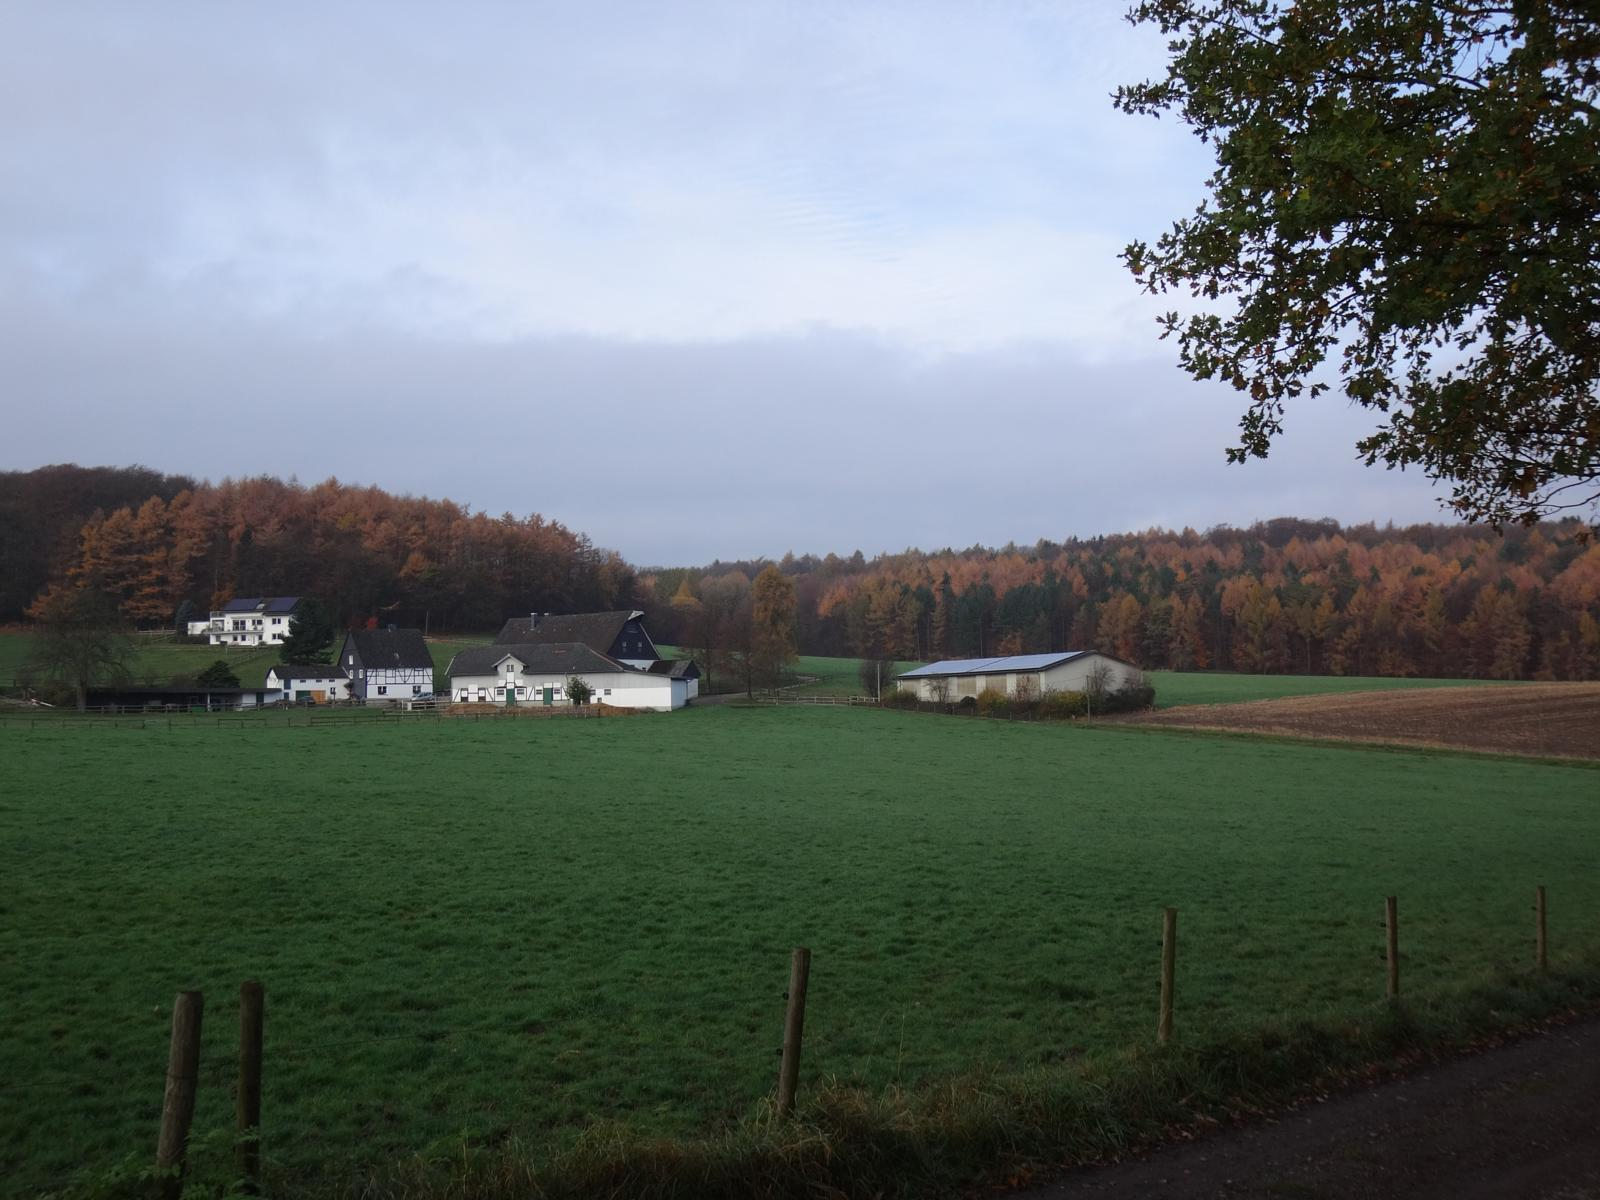 argazkia Between Wupper and Ruhr valleys on Bahntrassen 106 km